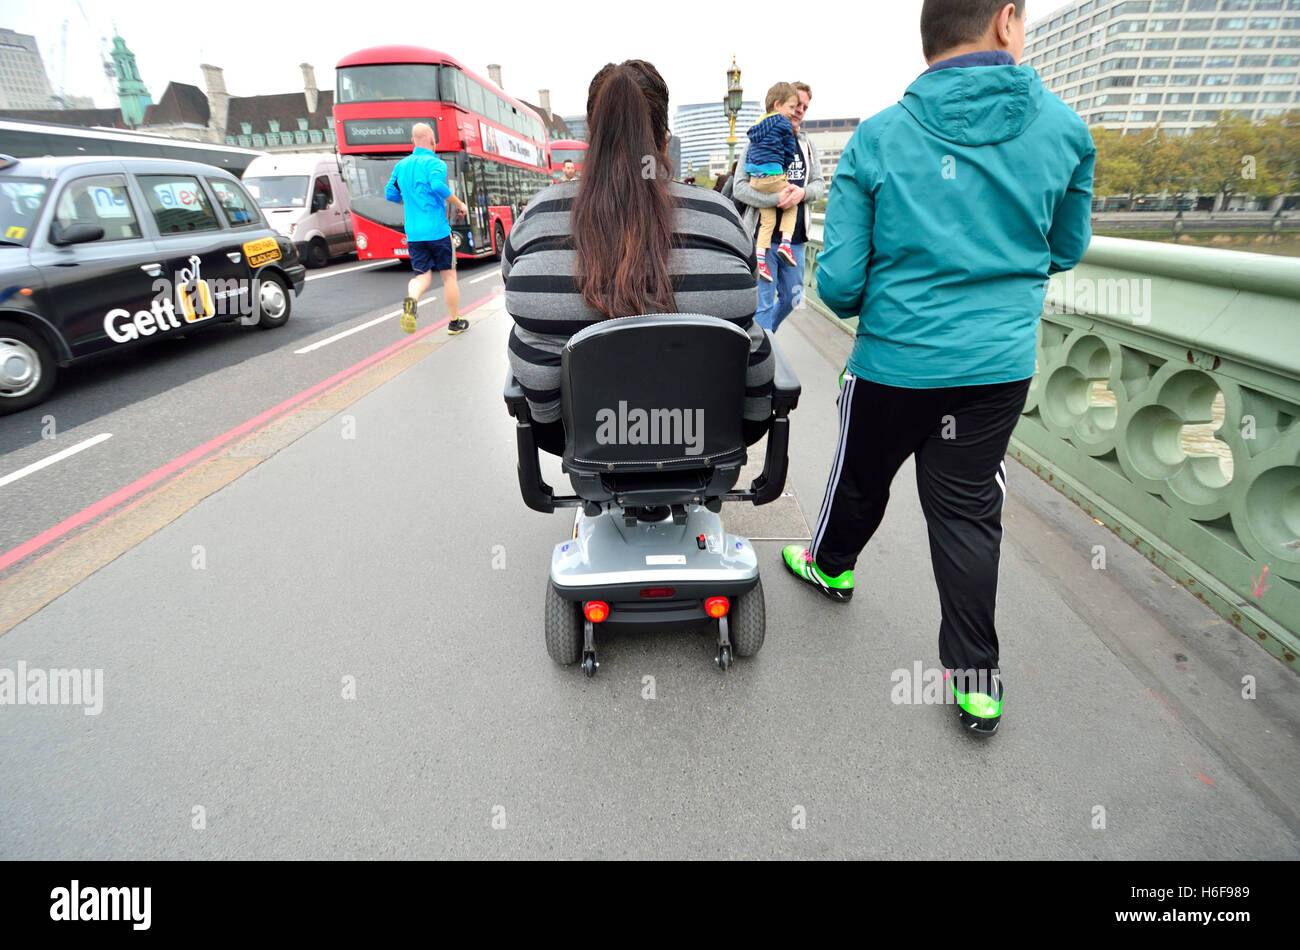 London, England, UK. Overweight woman using a mobility scooter on Westminster Bridge - Stock Image